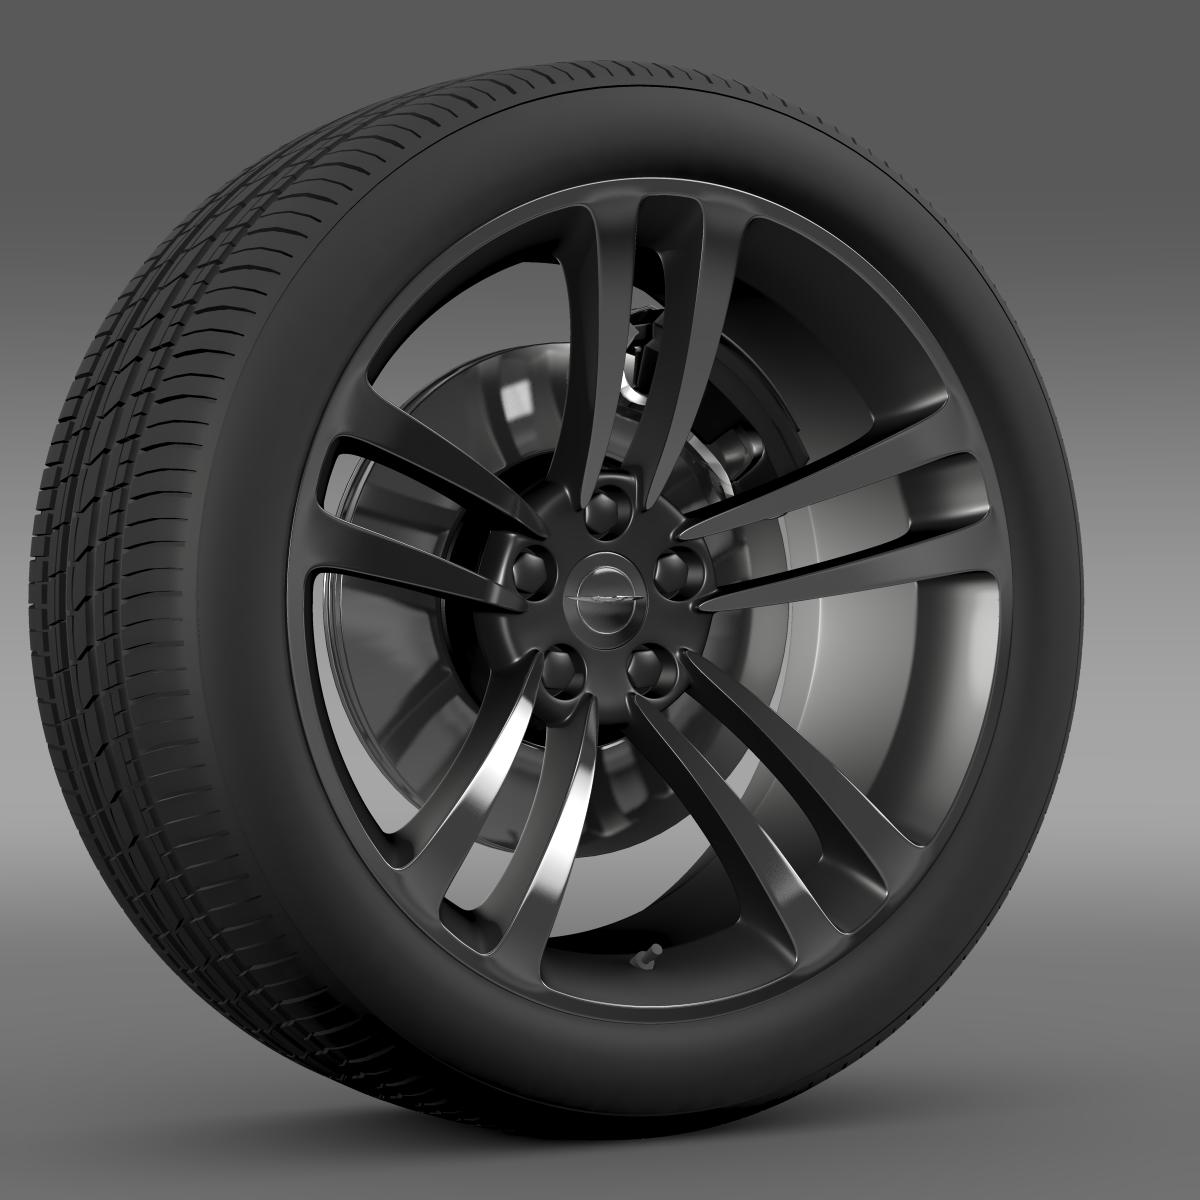 chrysler 300 srt8 core wheel 3d model 3ds max fbx c4d lwo ma mb hrc xsi obj 210628